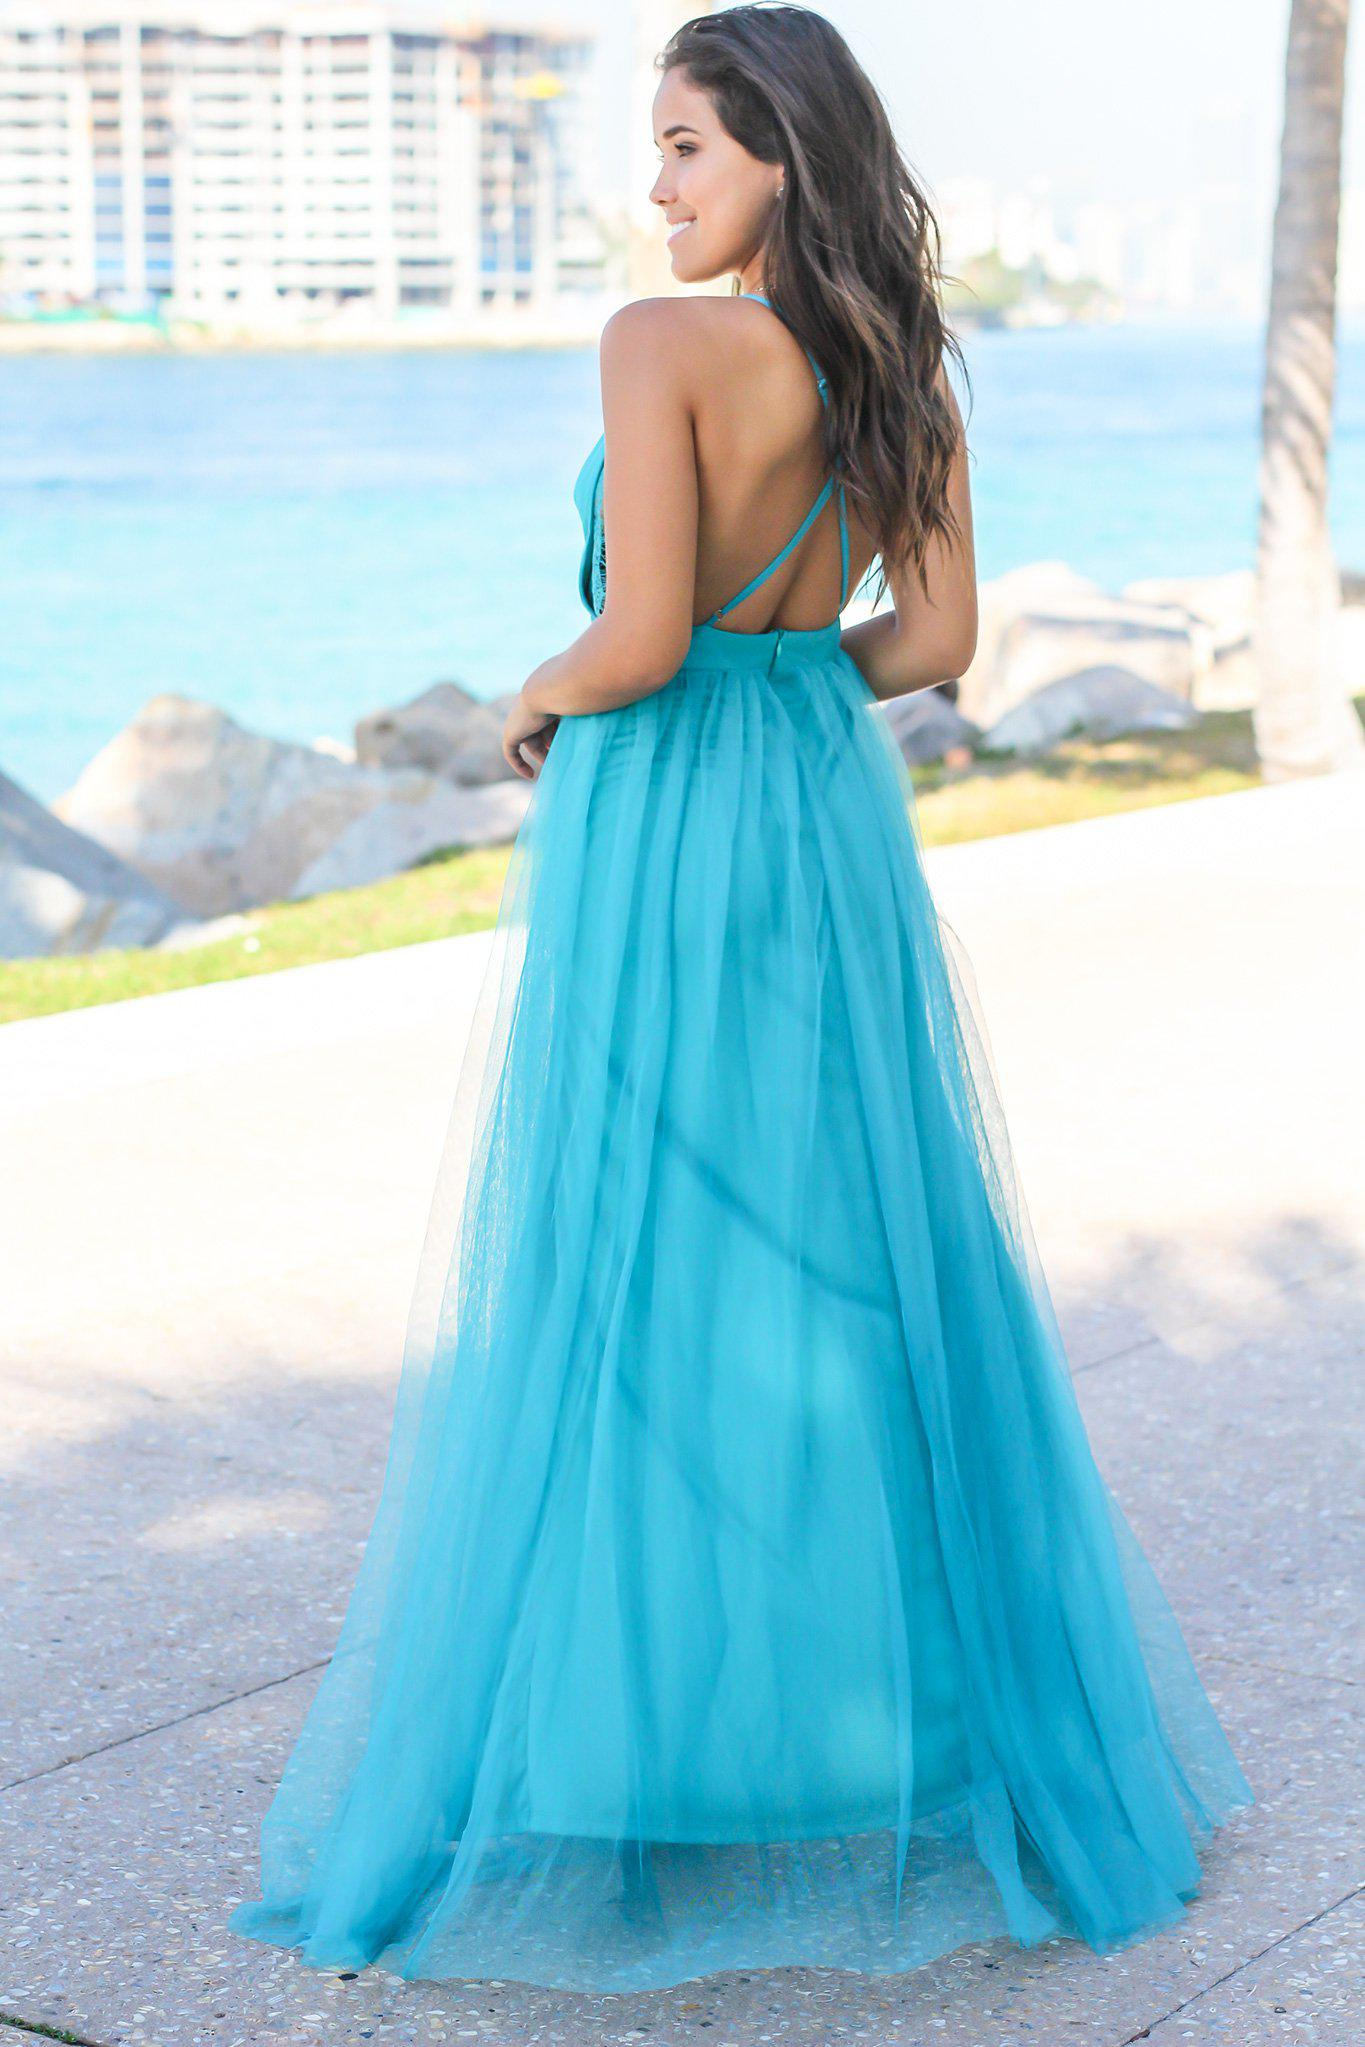 Turquoise Tulle Maxi Dress with Lace Detail